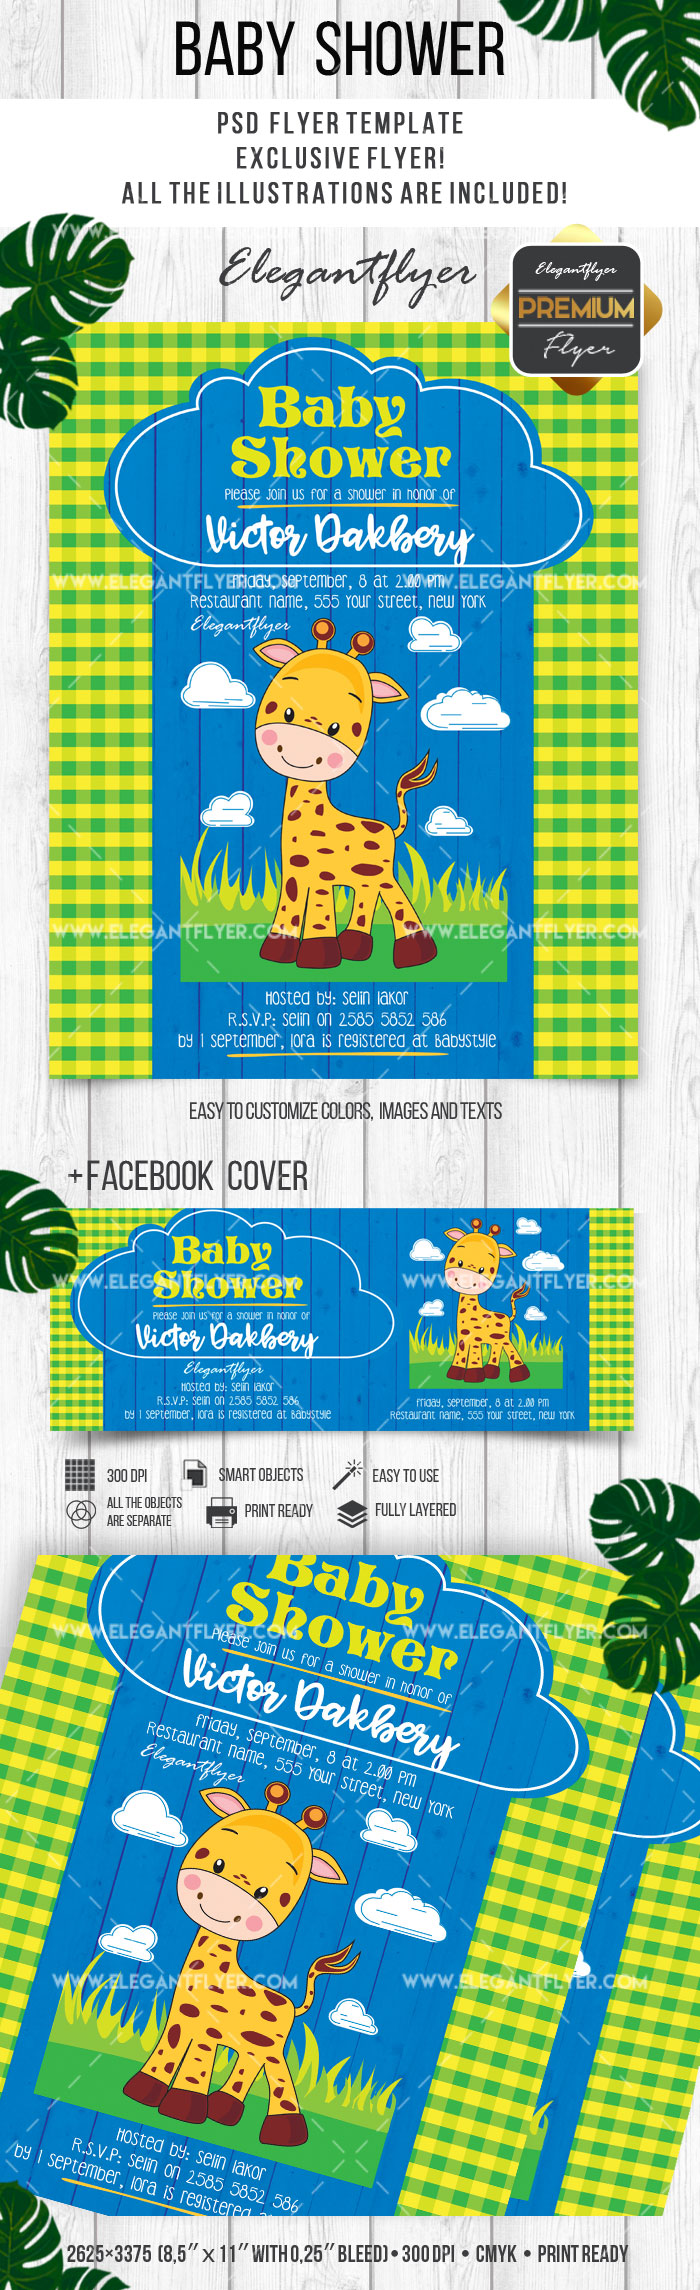 baby shower u2013 flyer psd template facebook cover